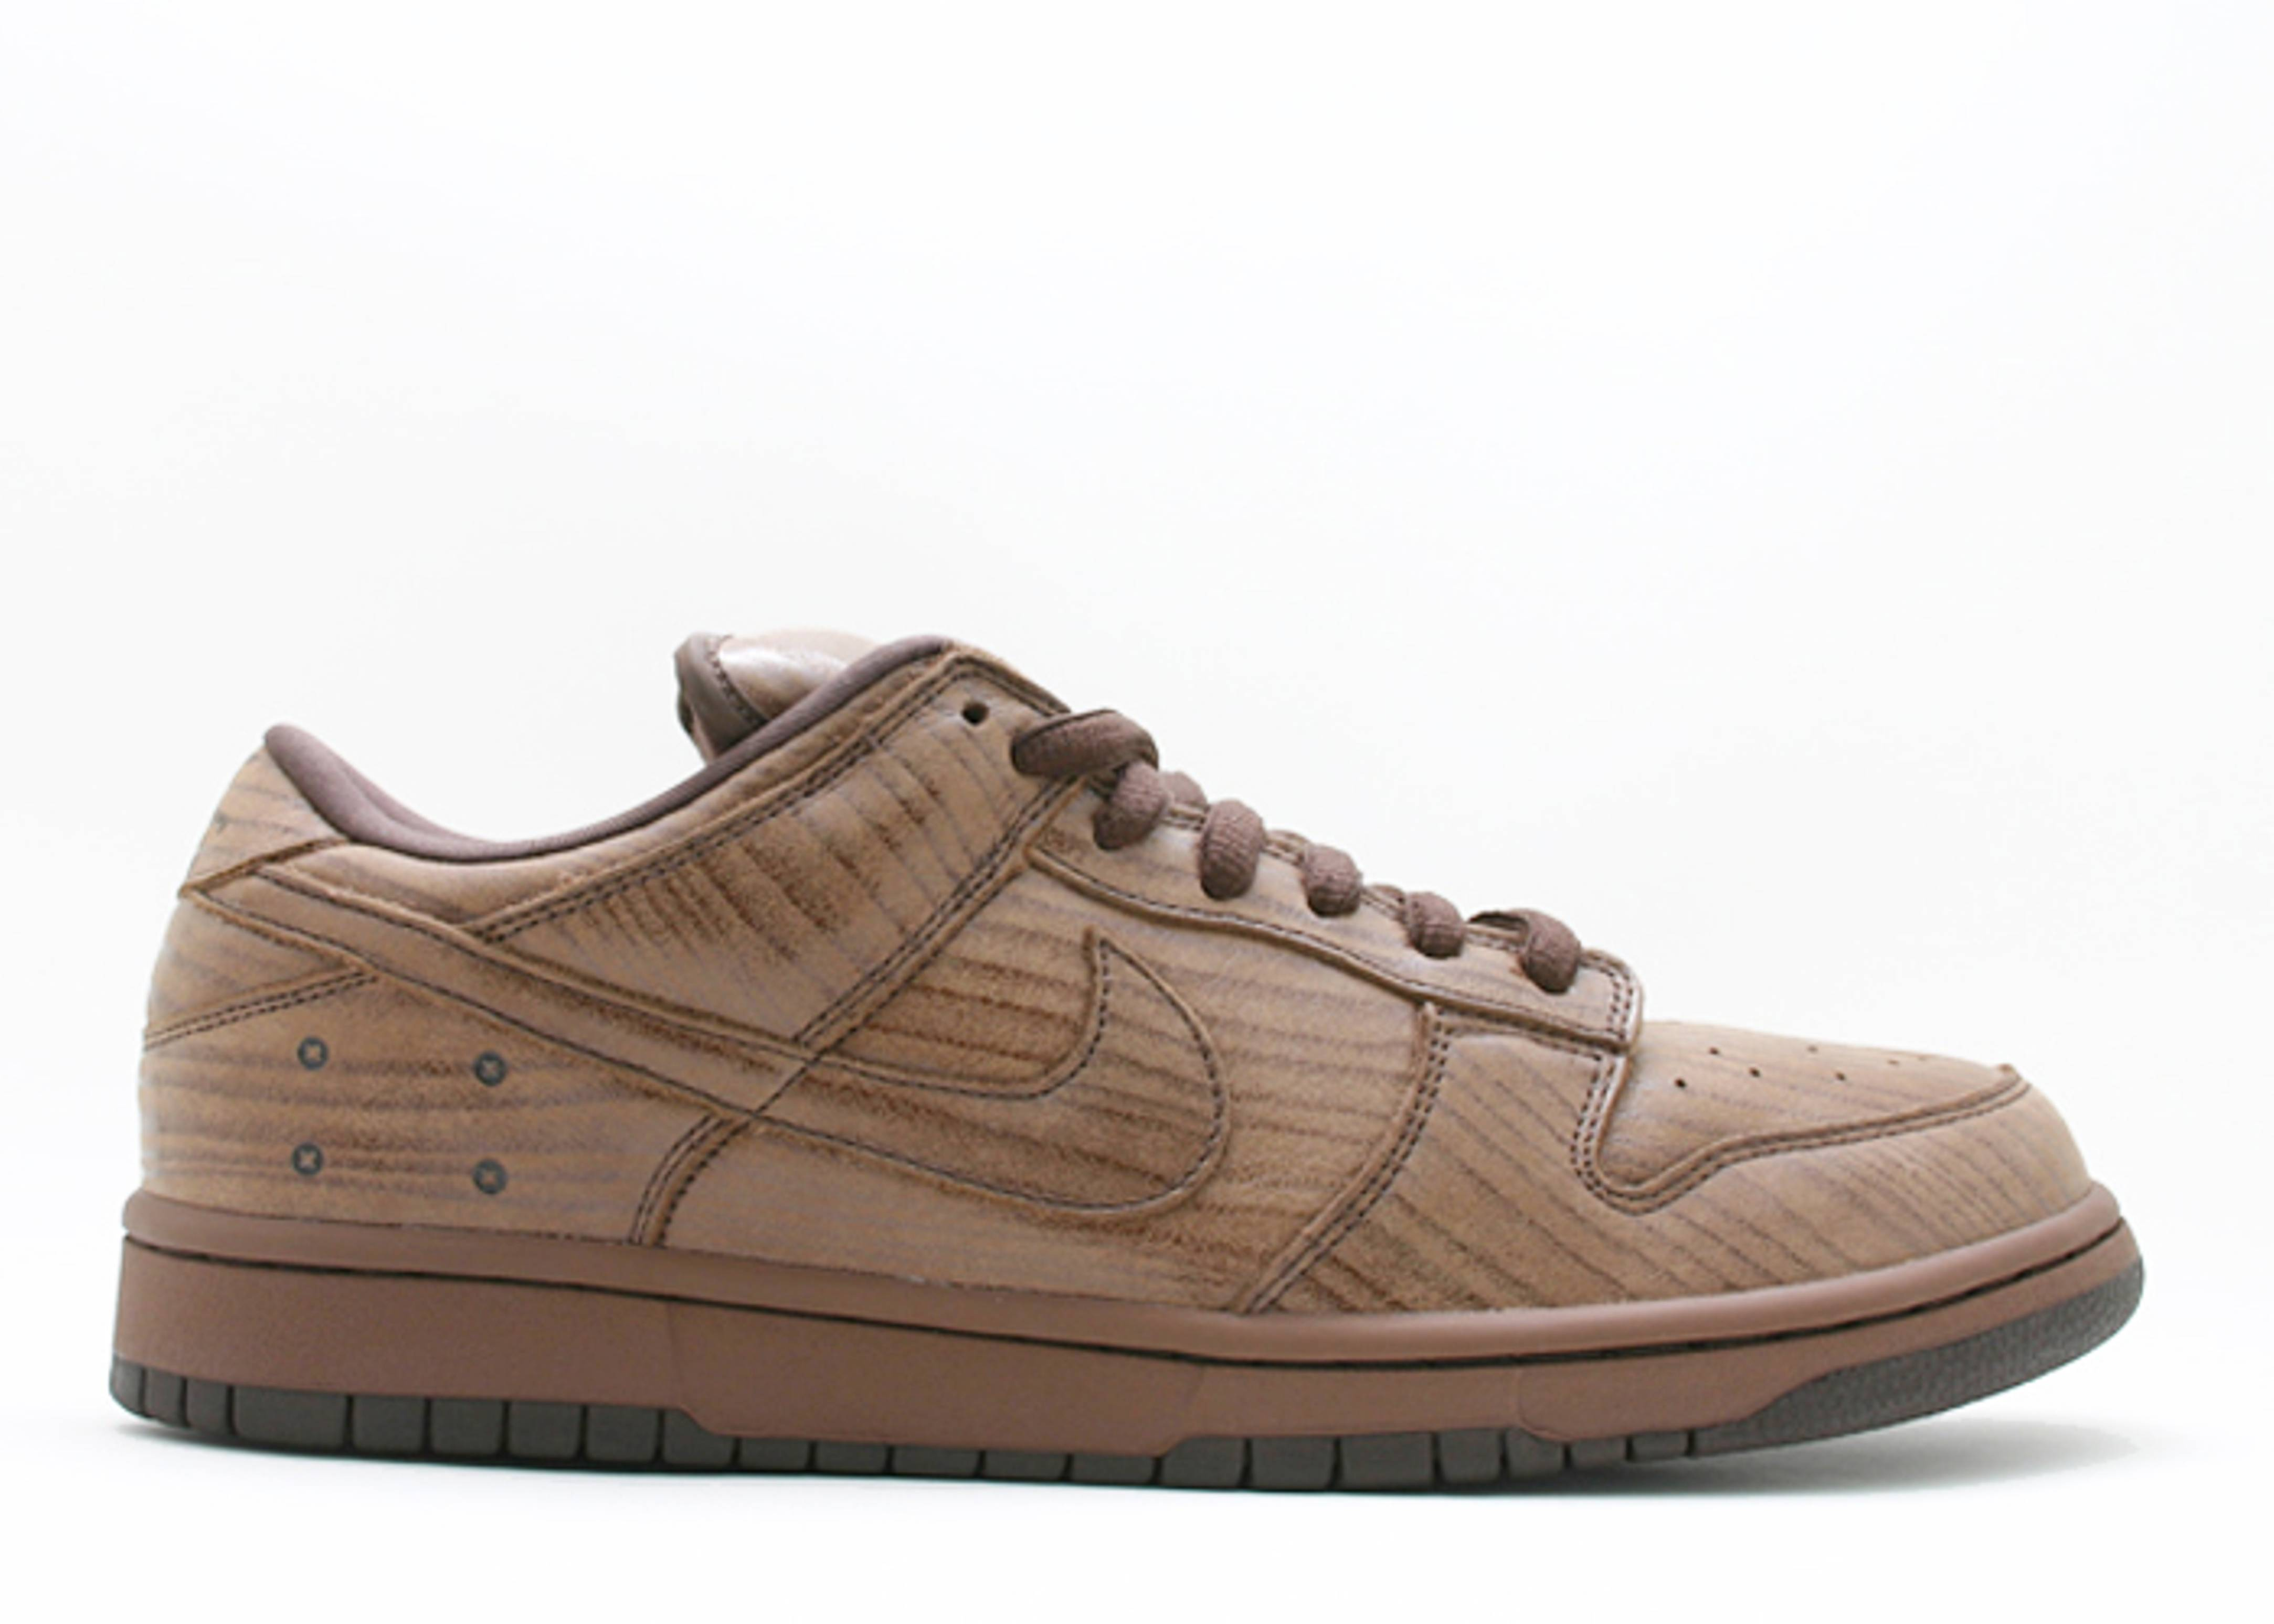 dunk low michael lau